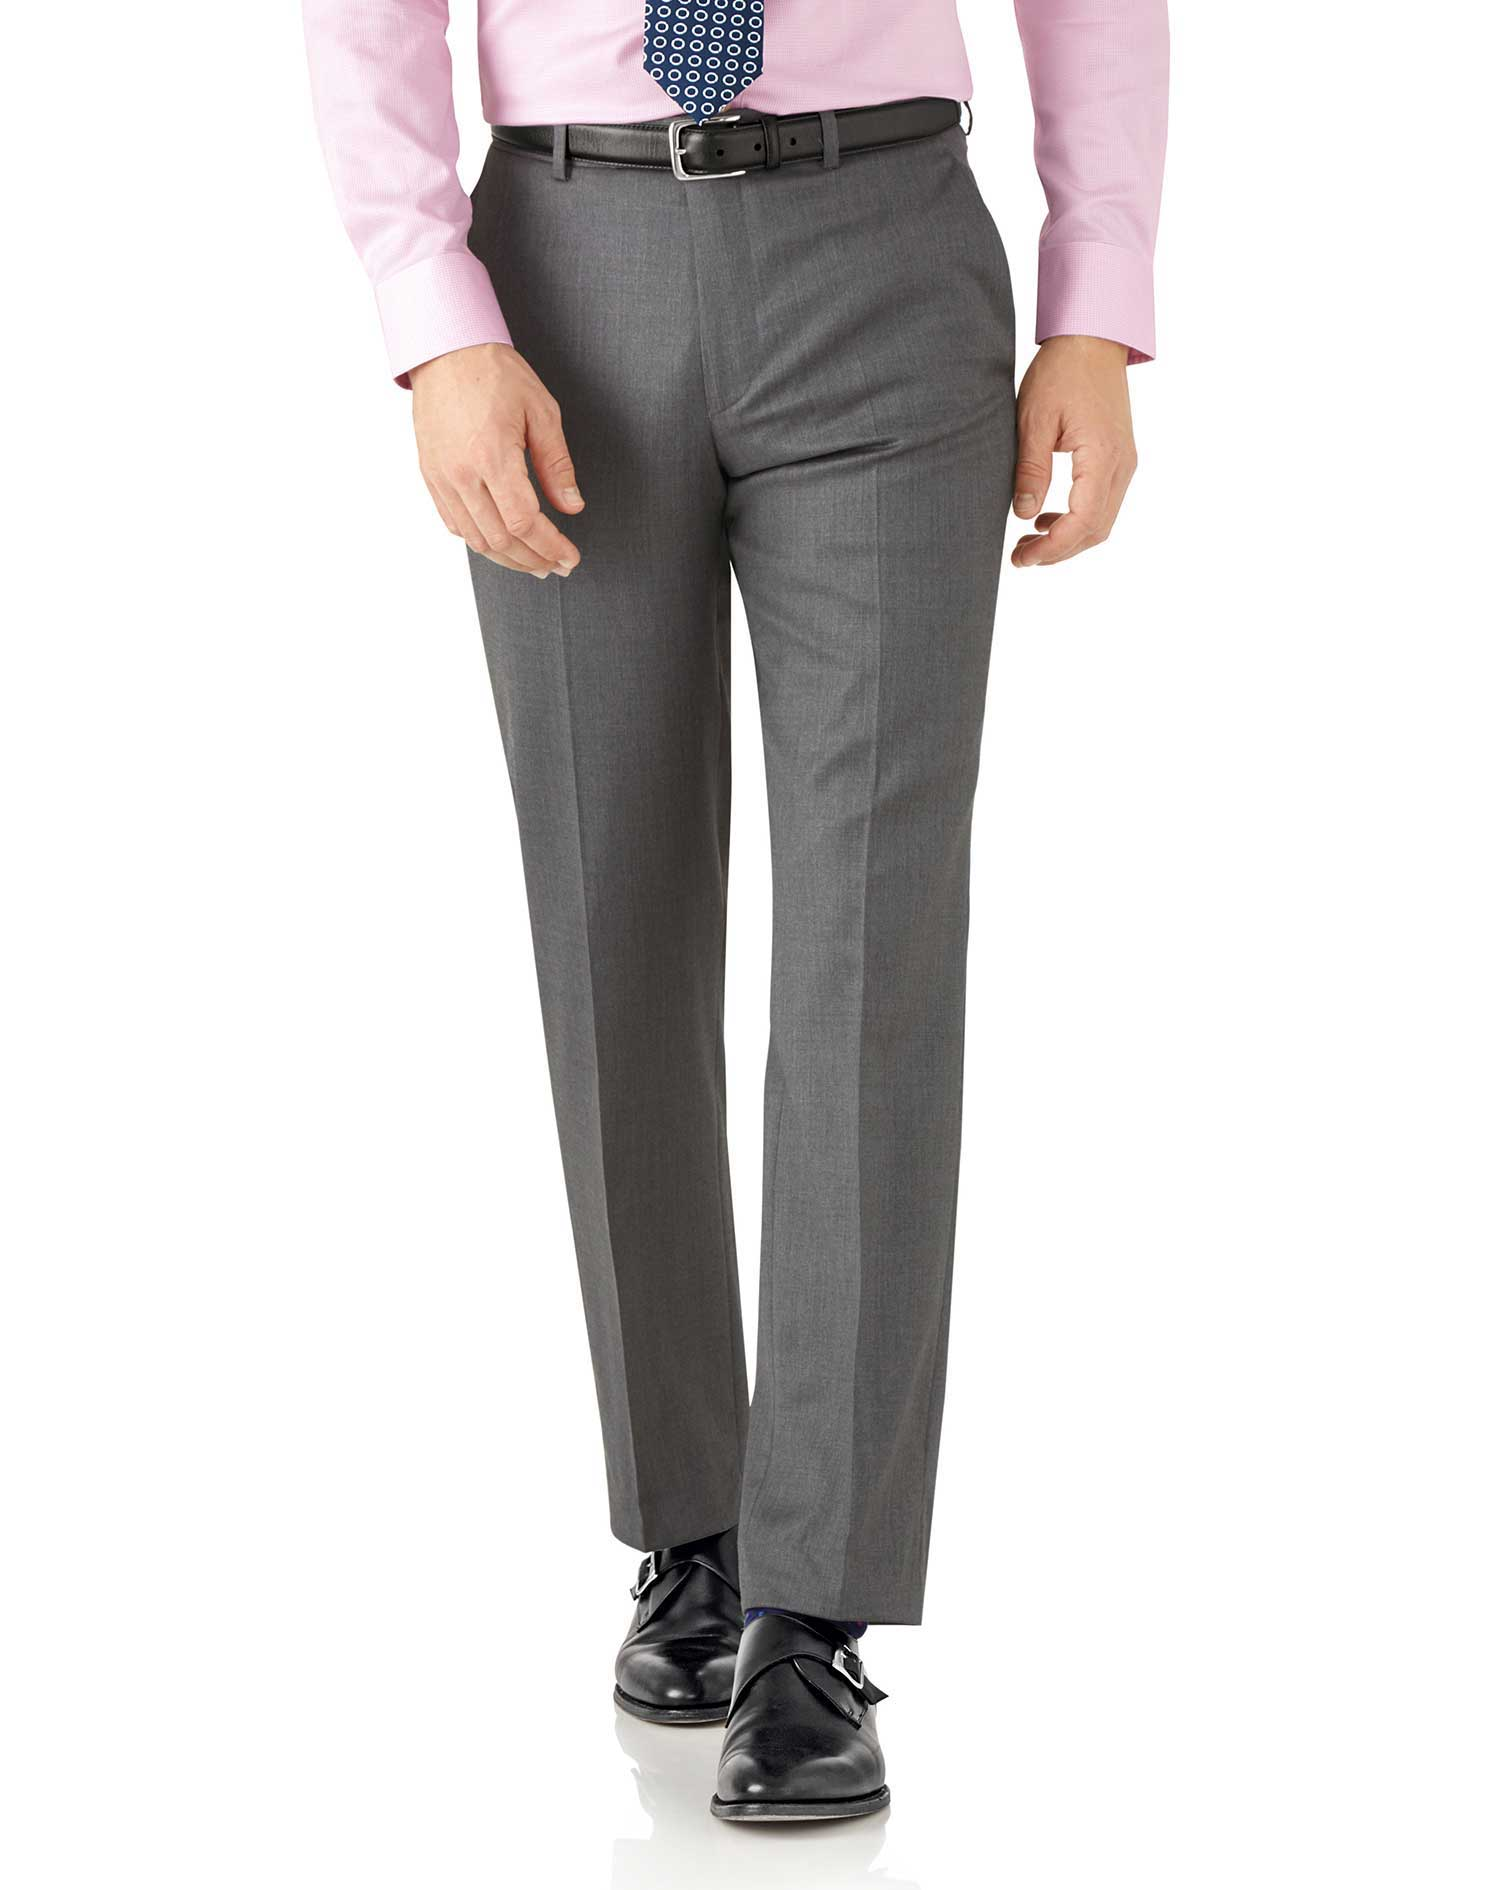 Grey classic fit Italian suit pants